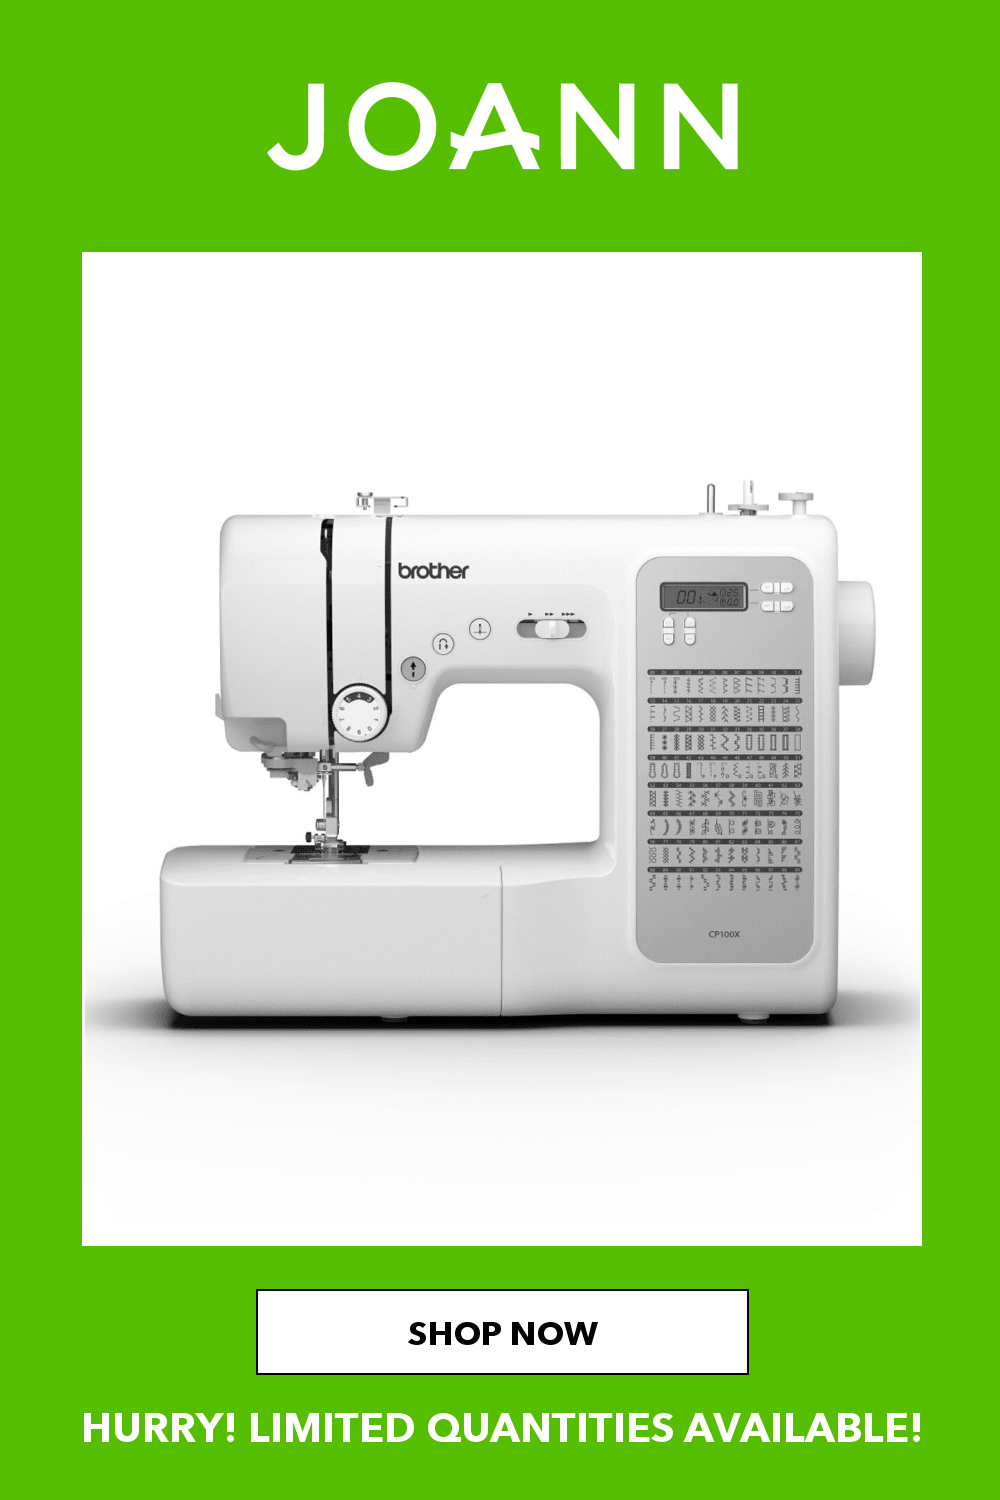 Joann Sewing Machines : joann, sewing, machines, Brother, Cp100x, Sewing, Machine, JOANN, Machine,, Sewing,, Quilting